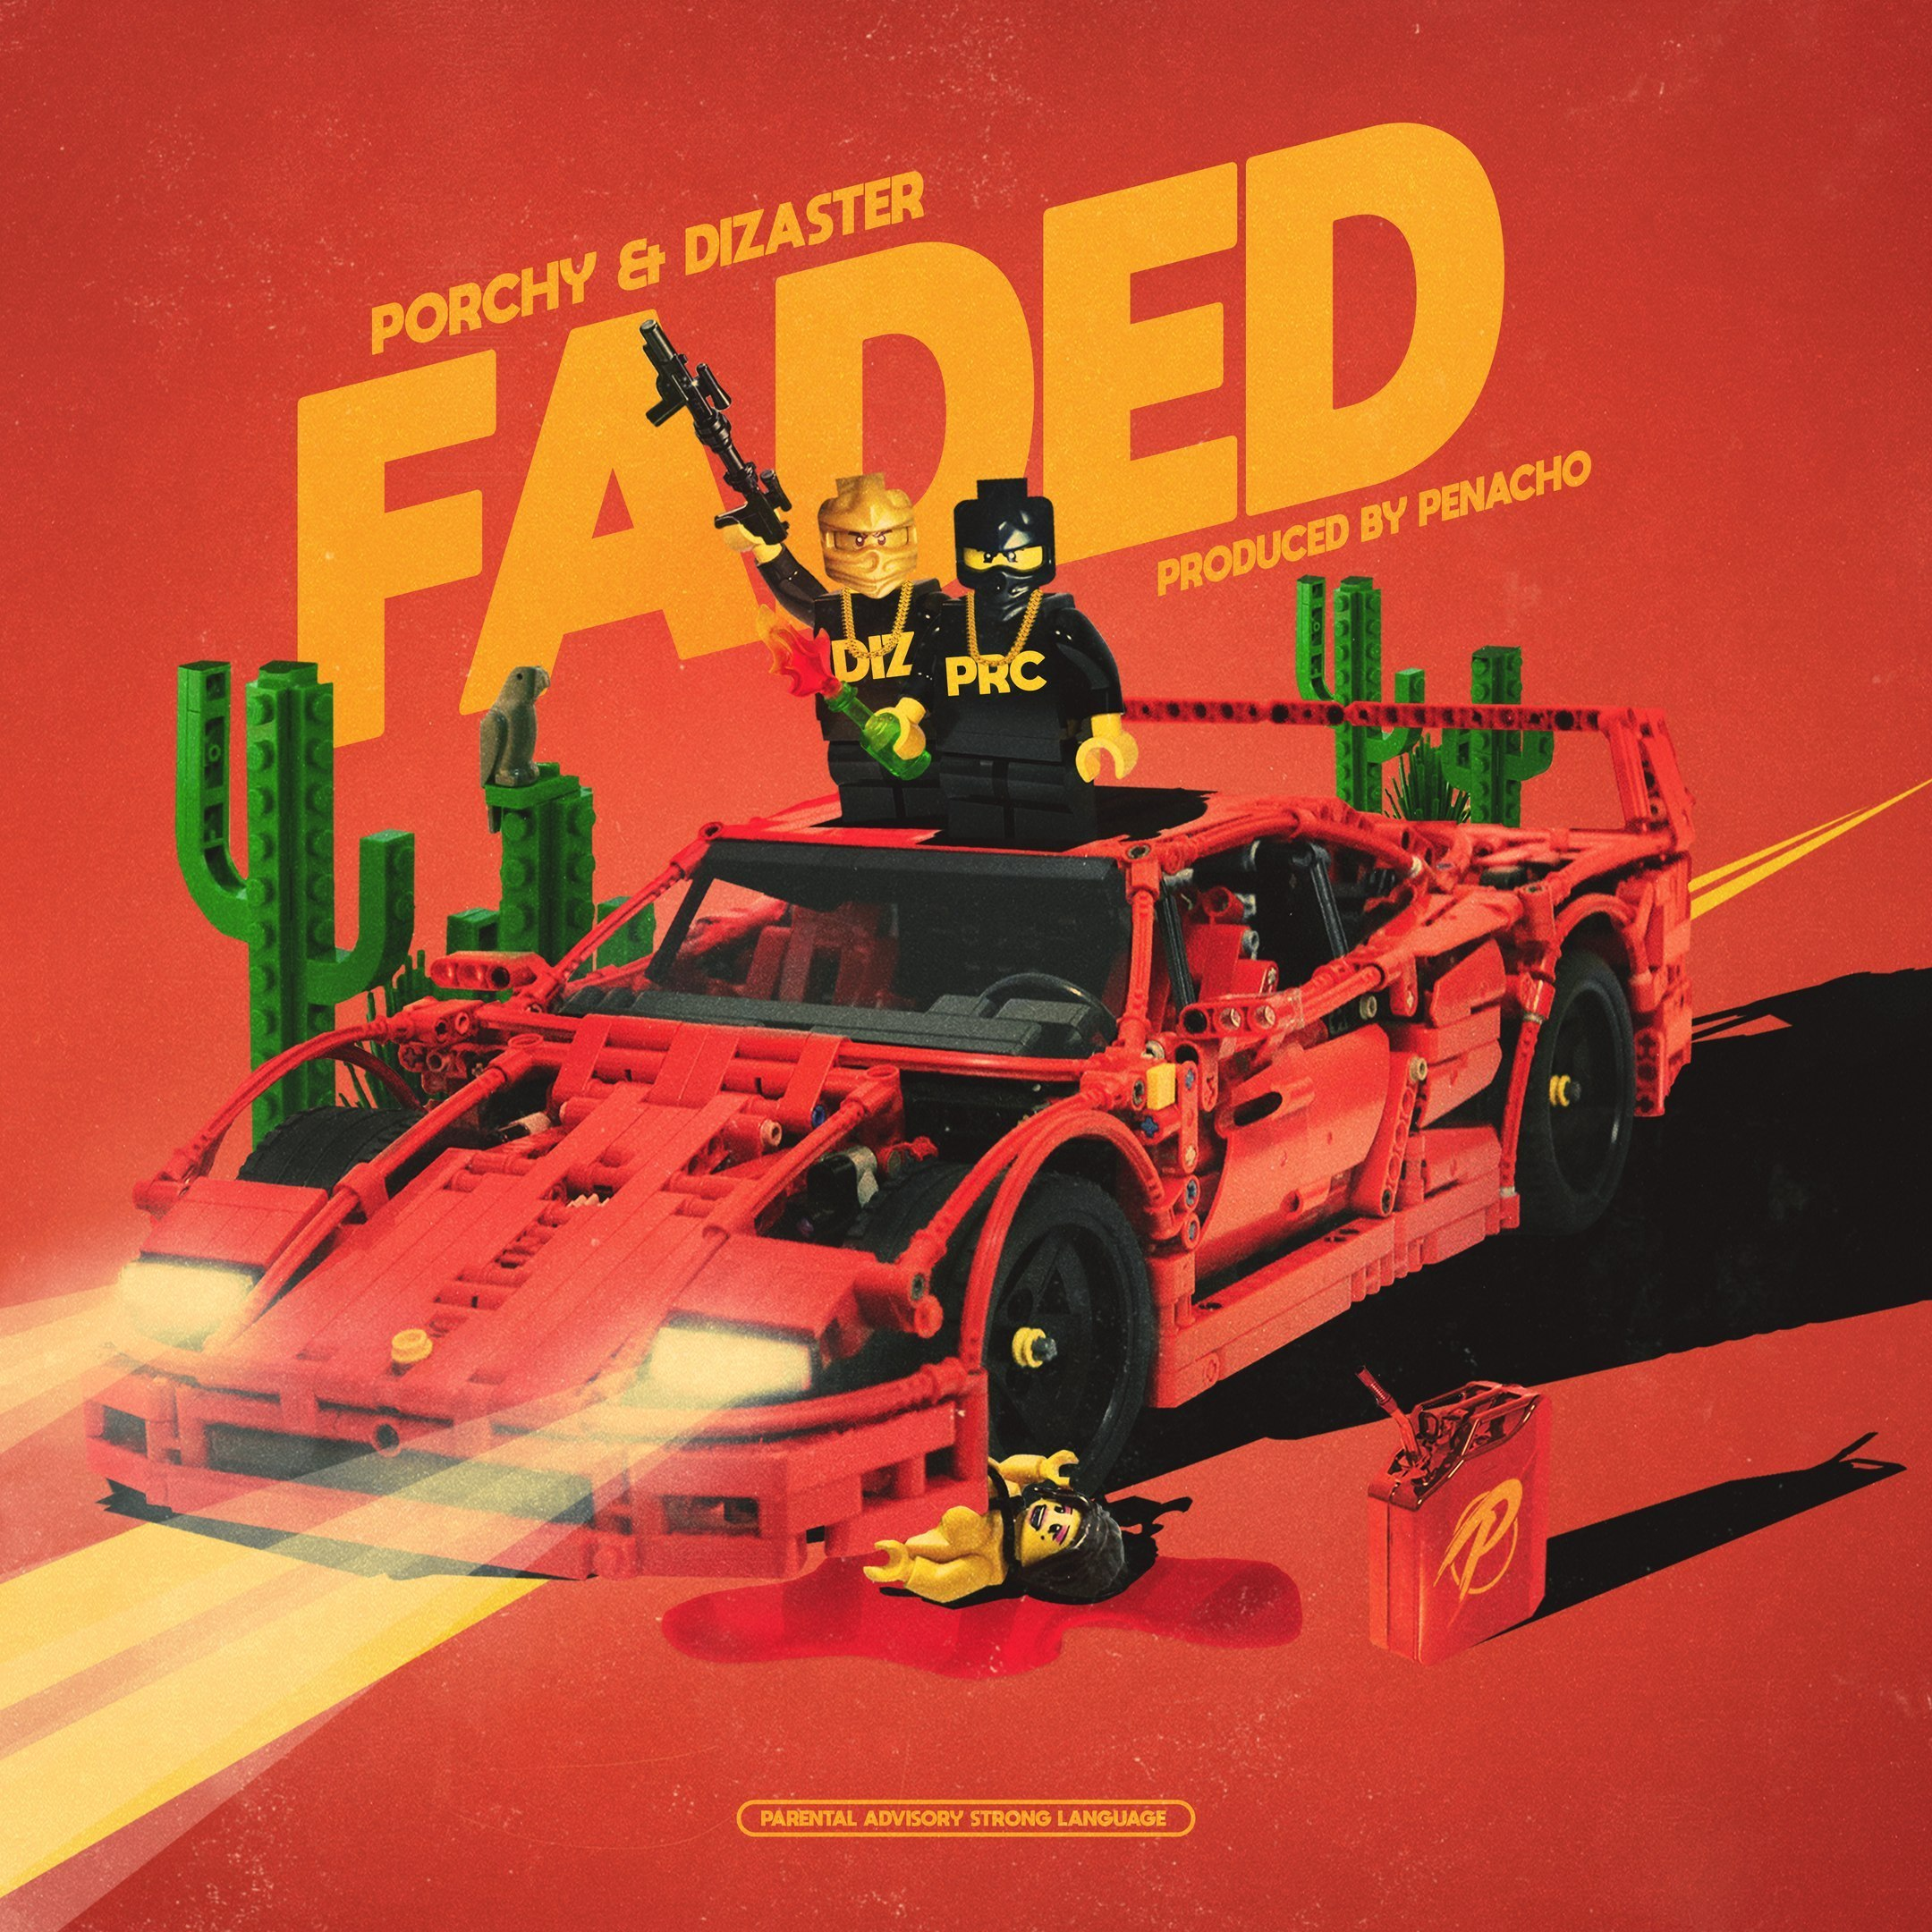 Porchy & Dizaster – Faded